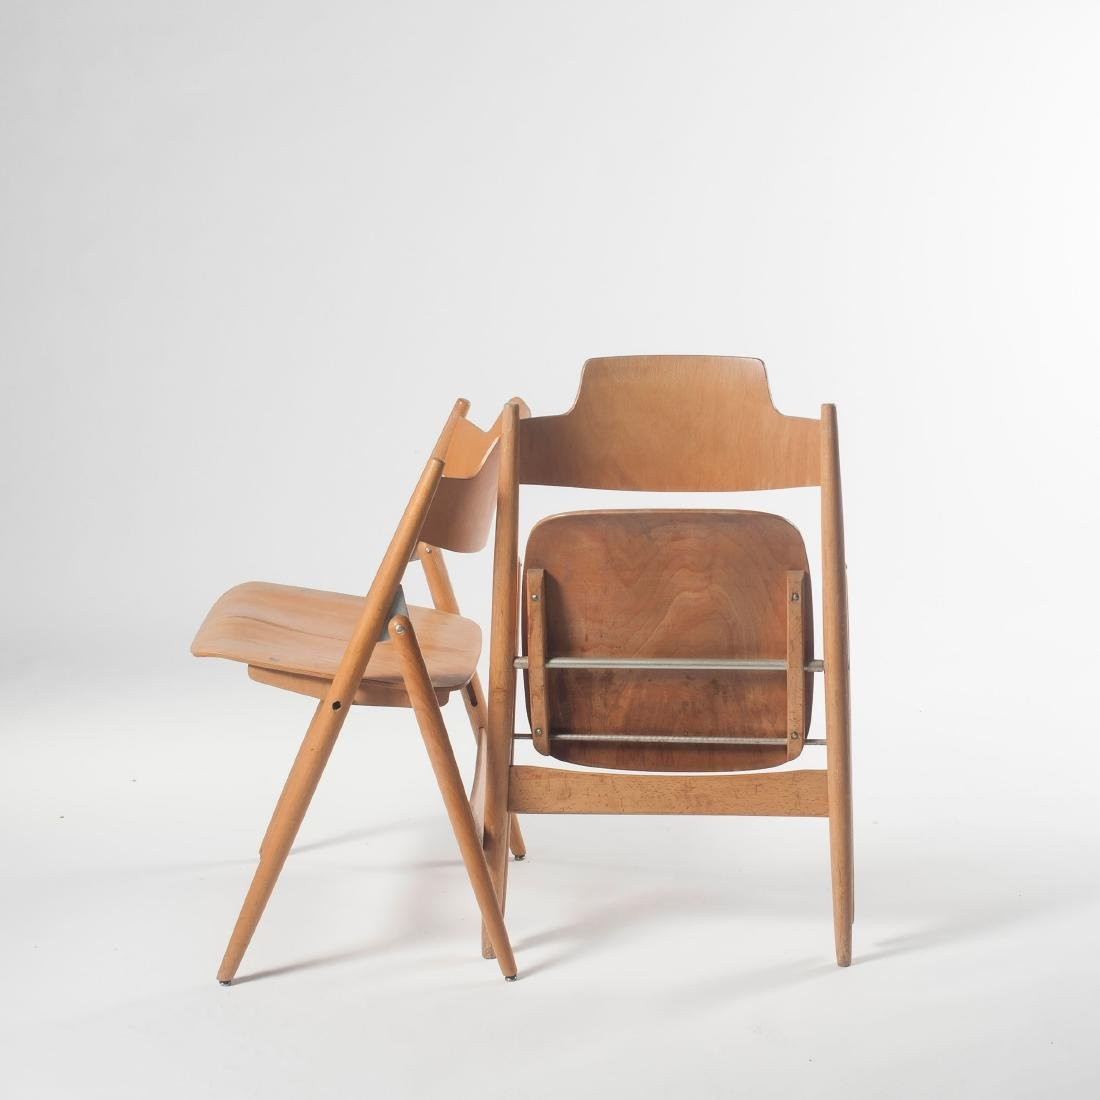 Six 'SE 18' folding chairs, 1953 - 5